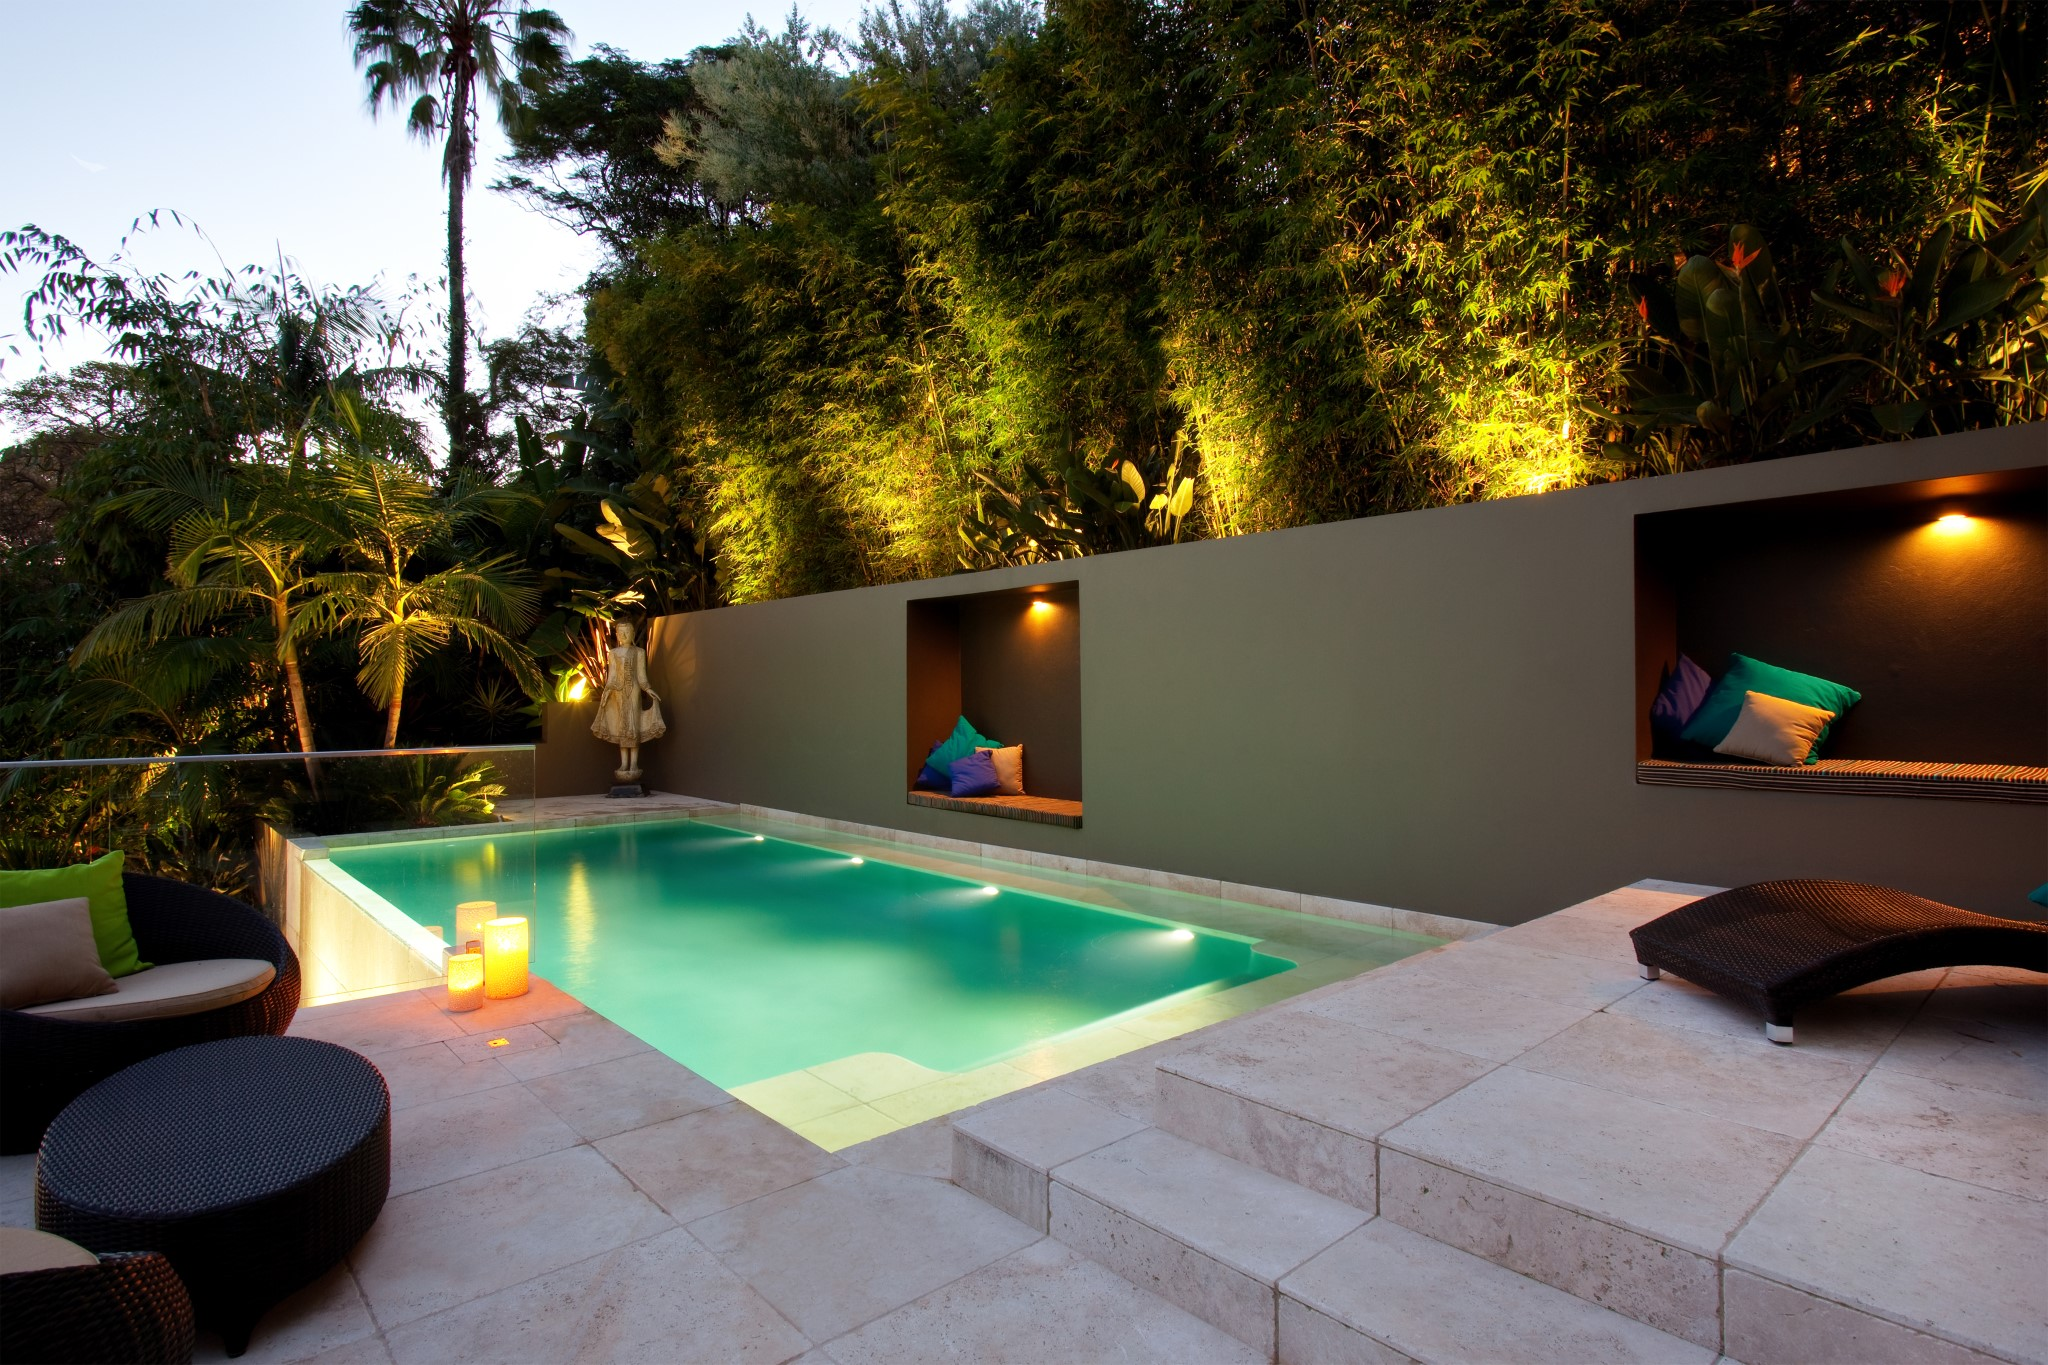 A plunge pool in a backyard of a luxurious property